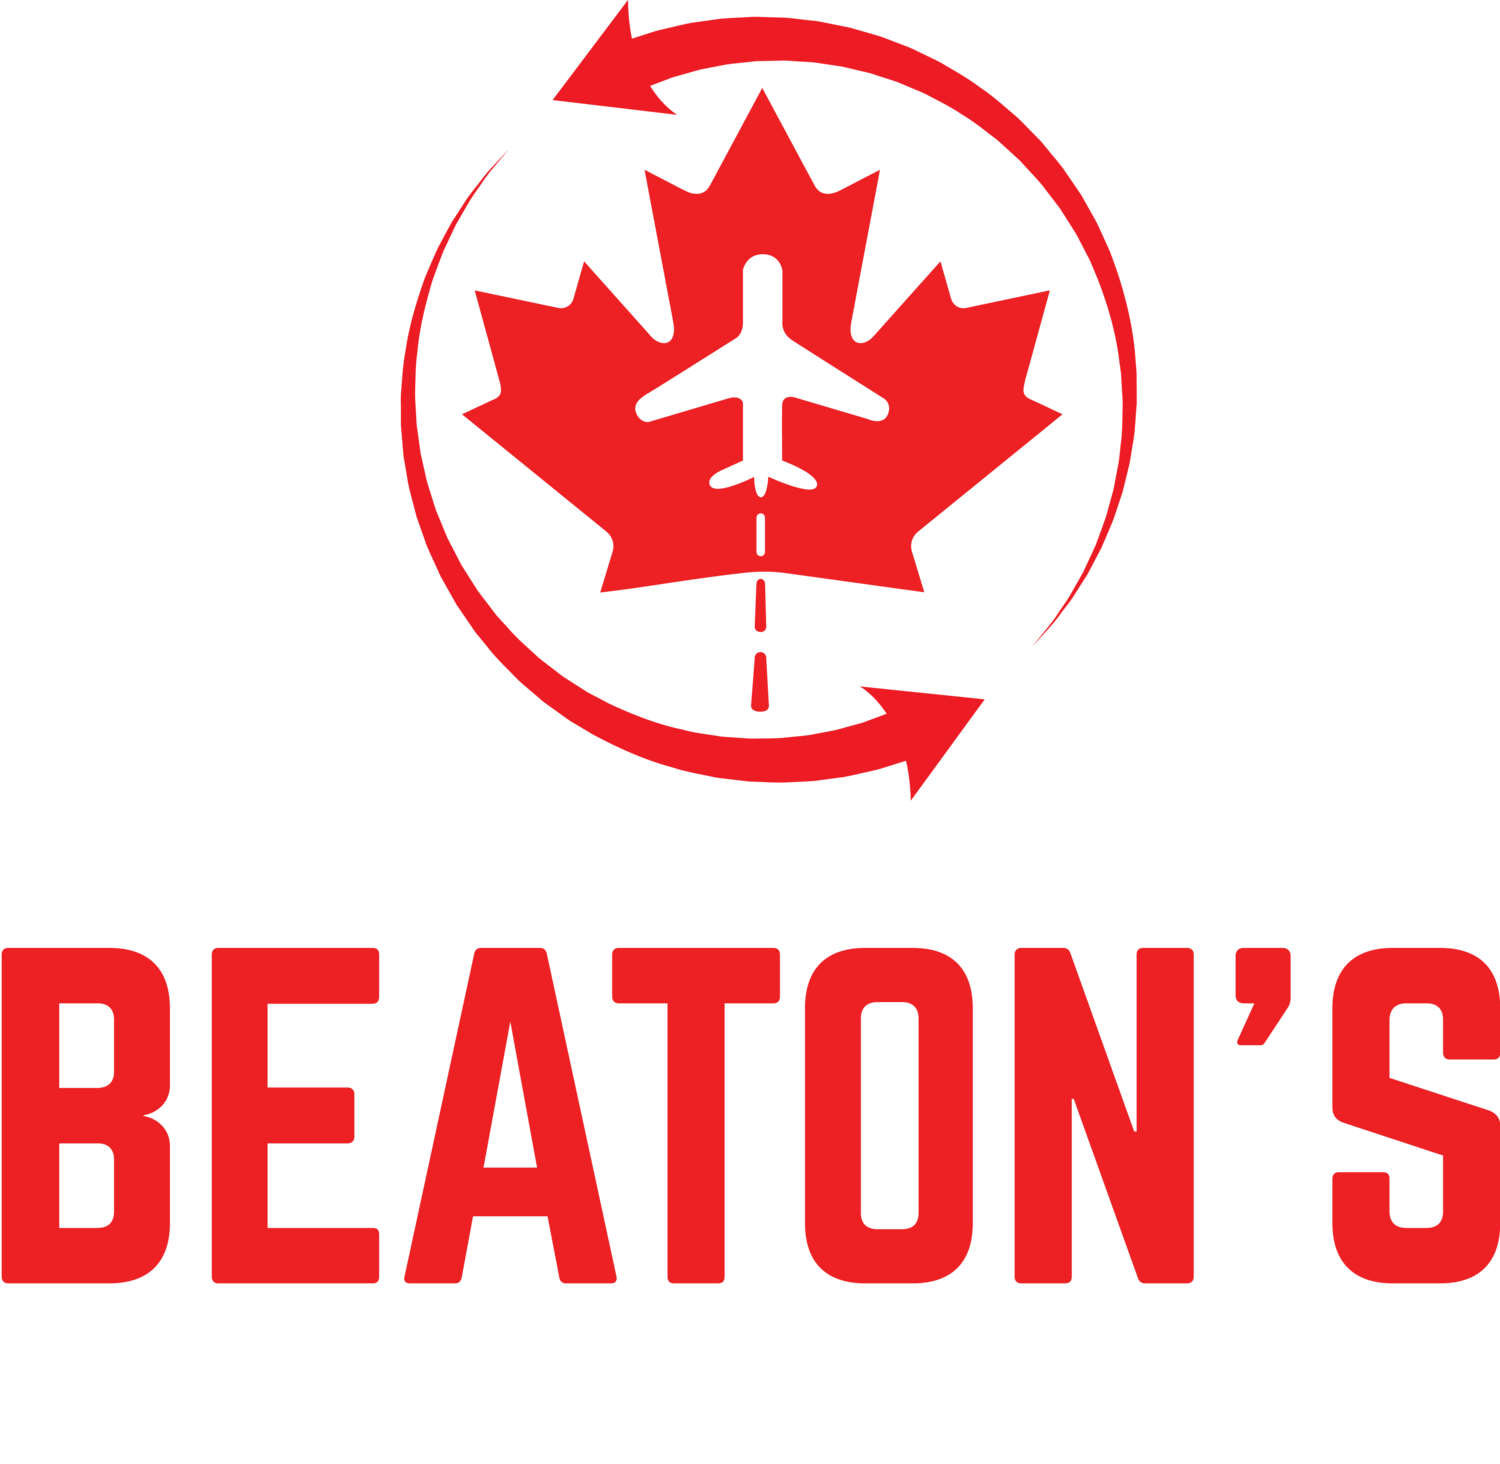 Beaton's Meet and Greet